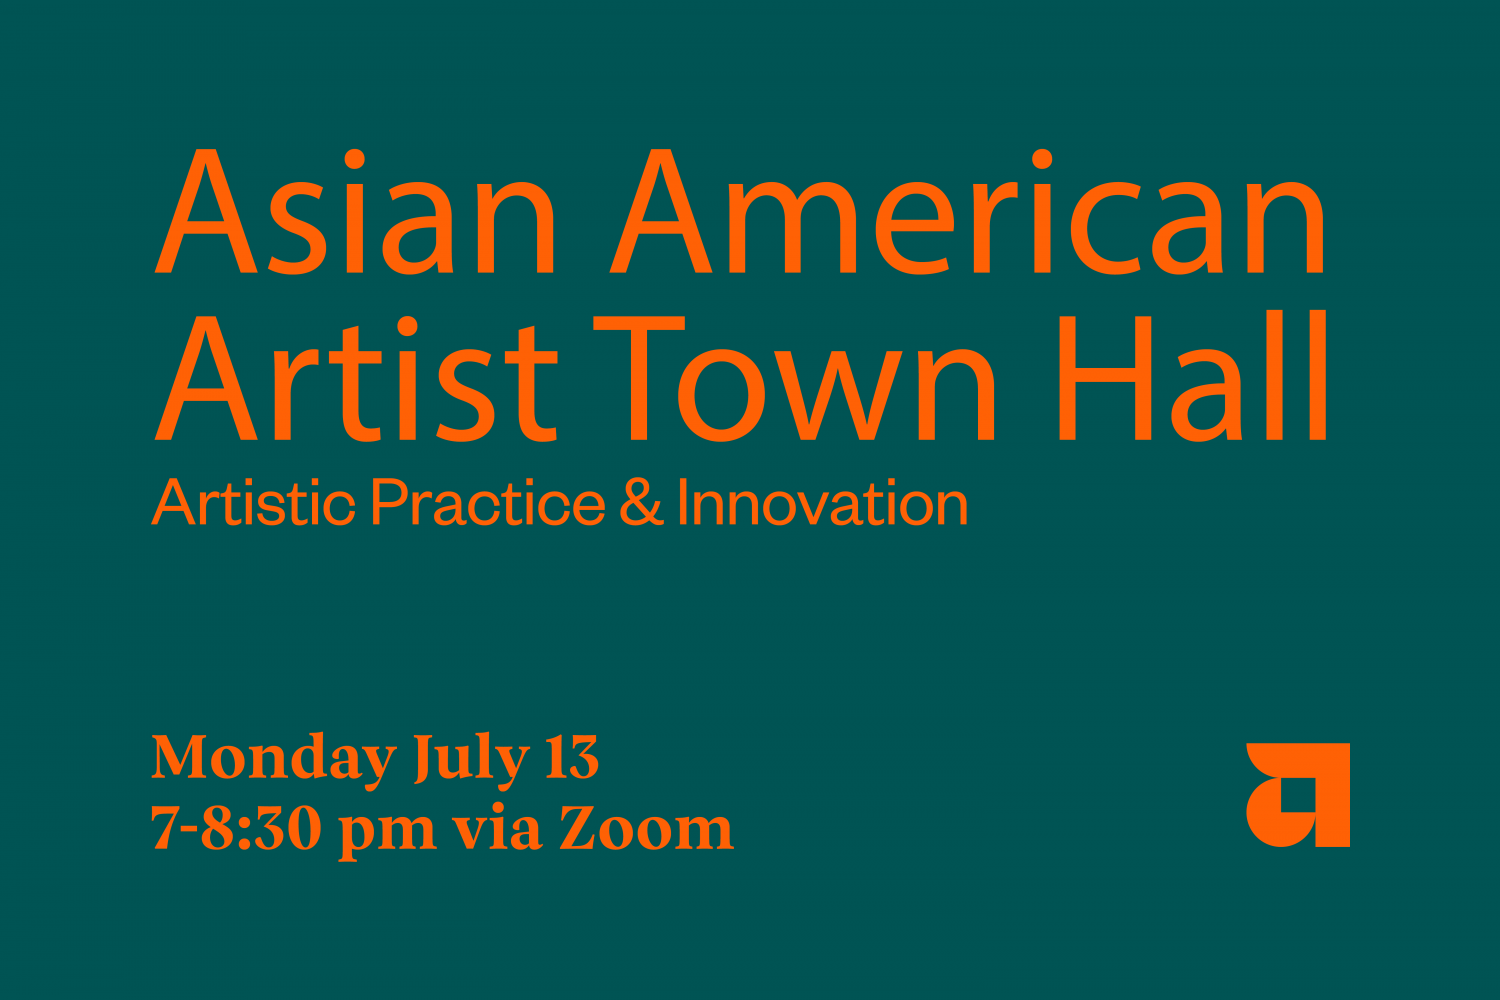 Asian American Artist Town Hall